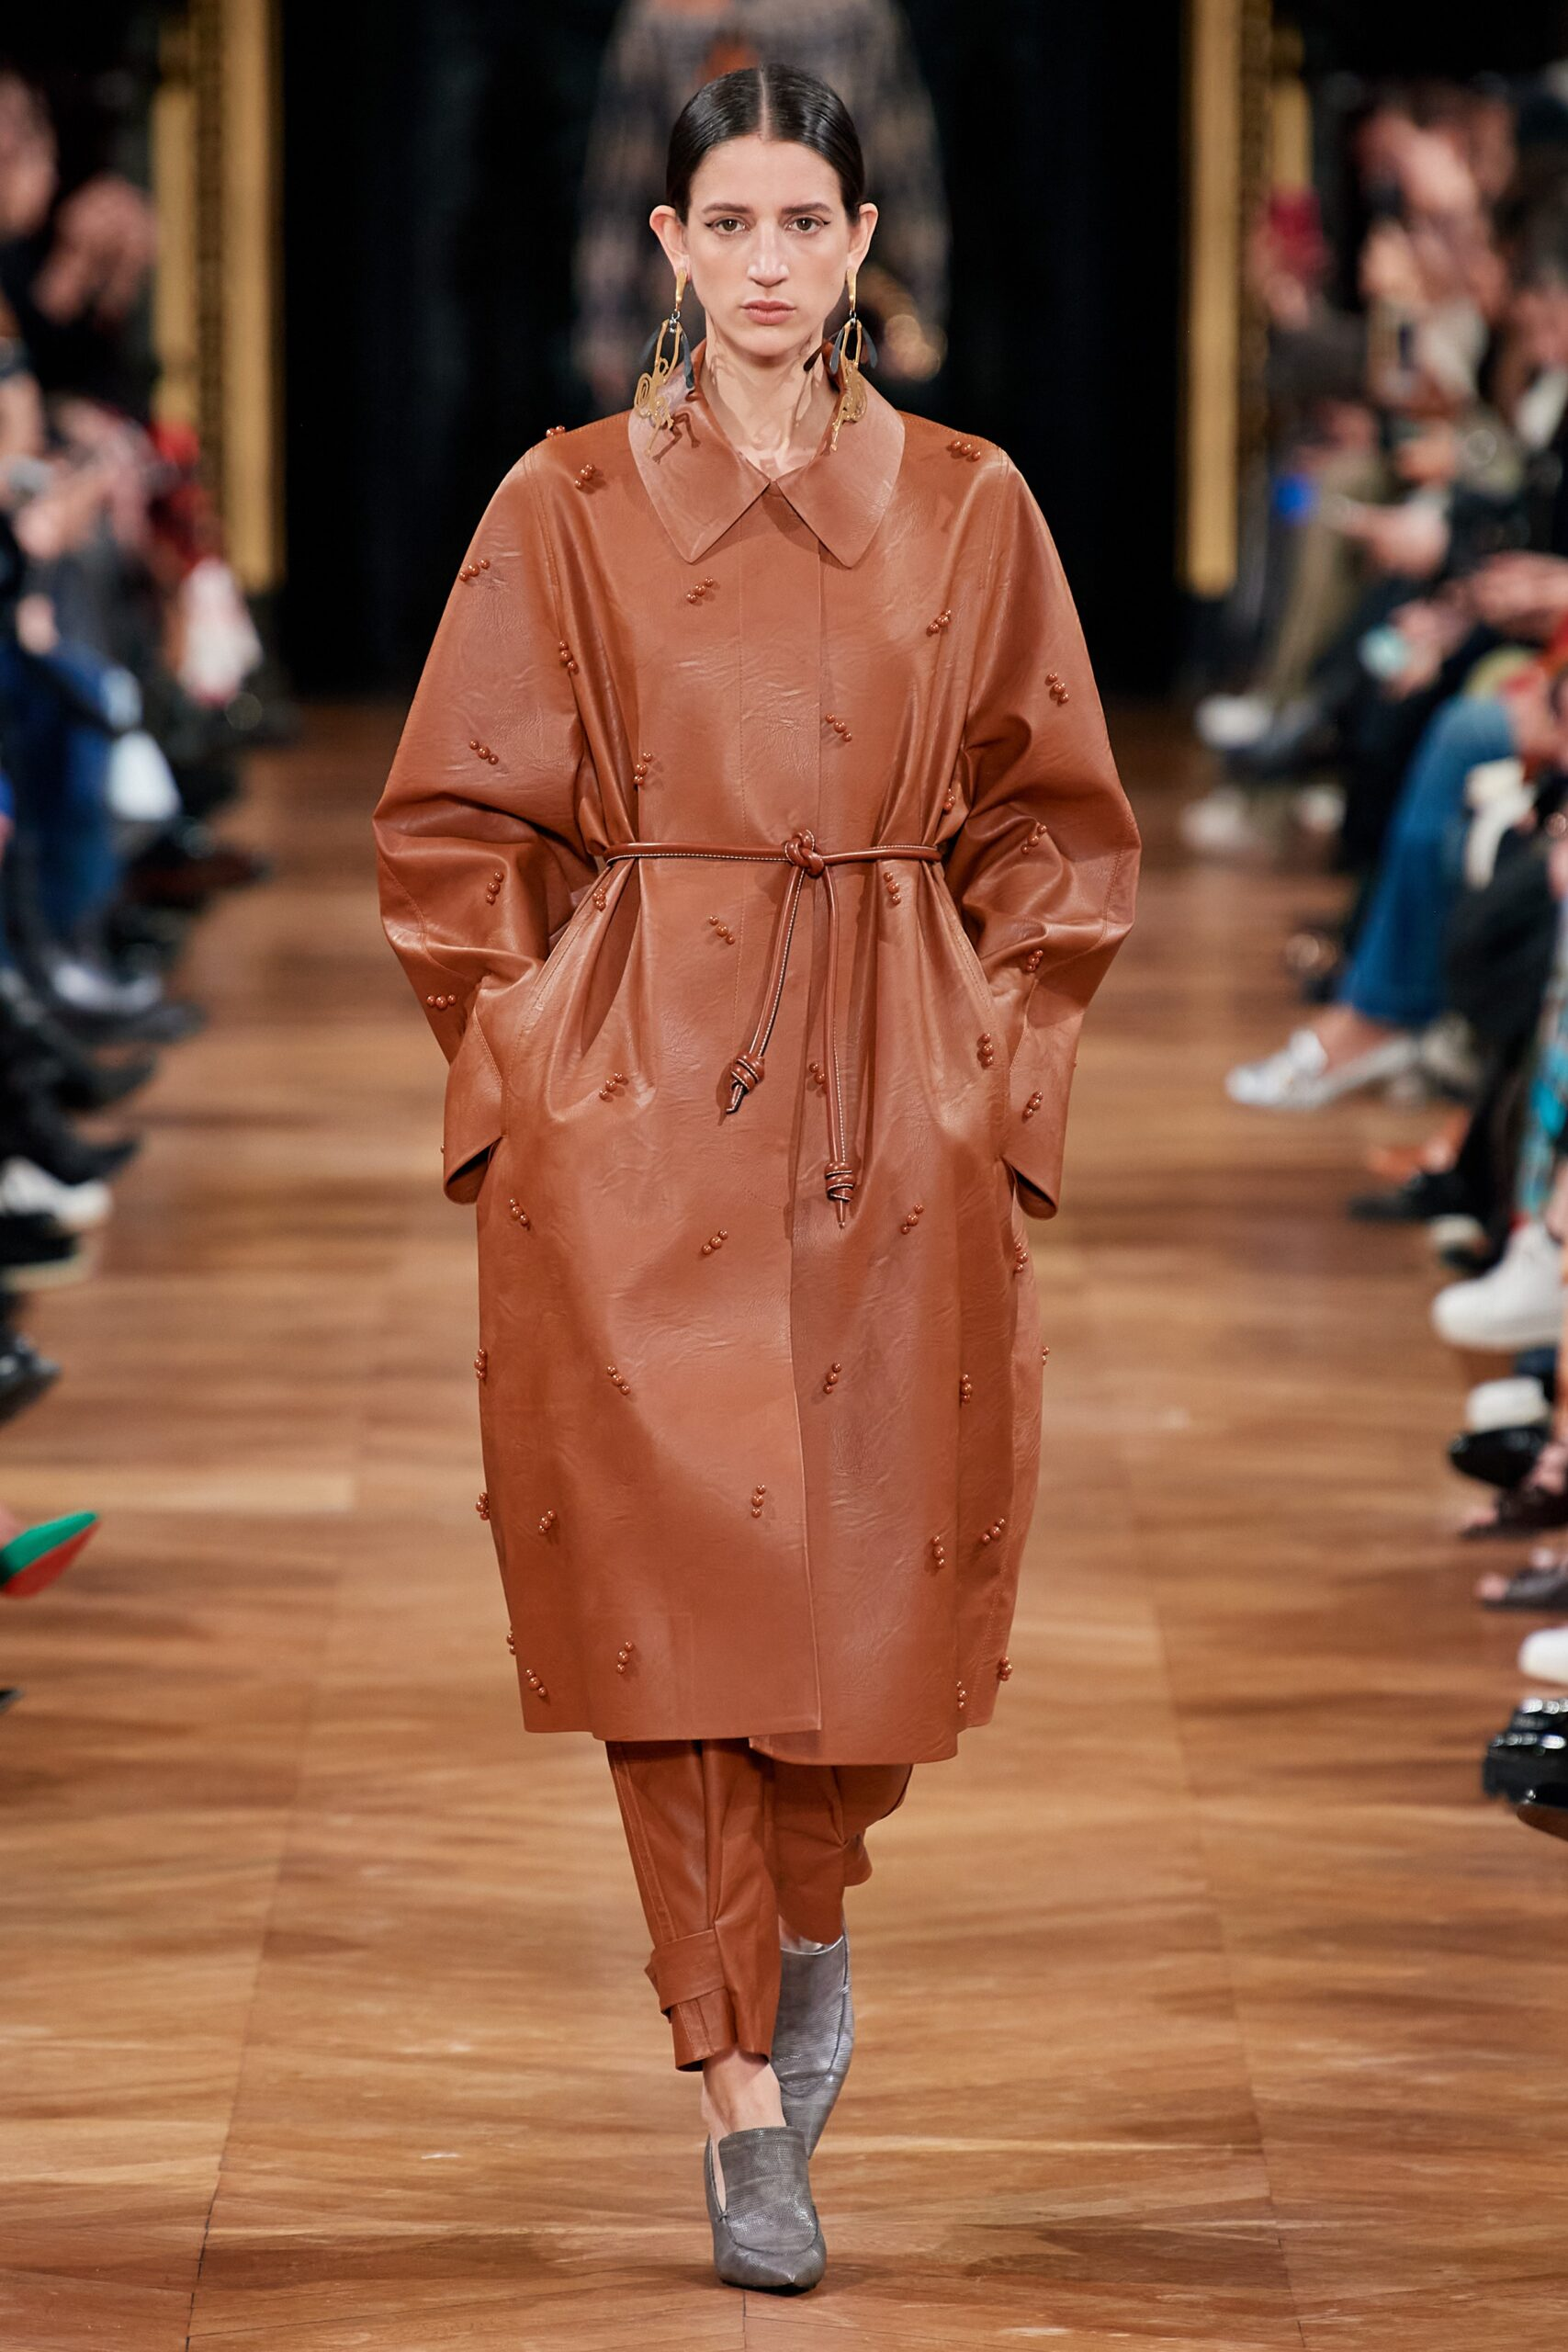 Stella McCartney Fall 2020 ready-to-wear